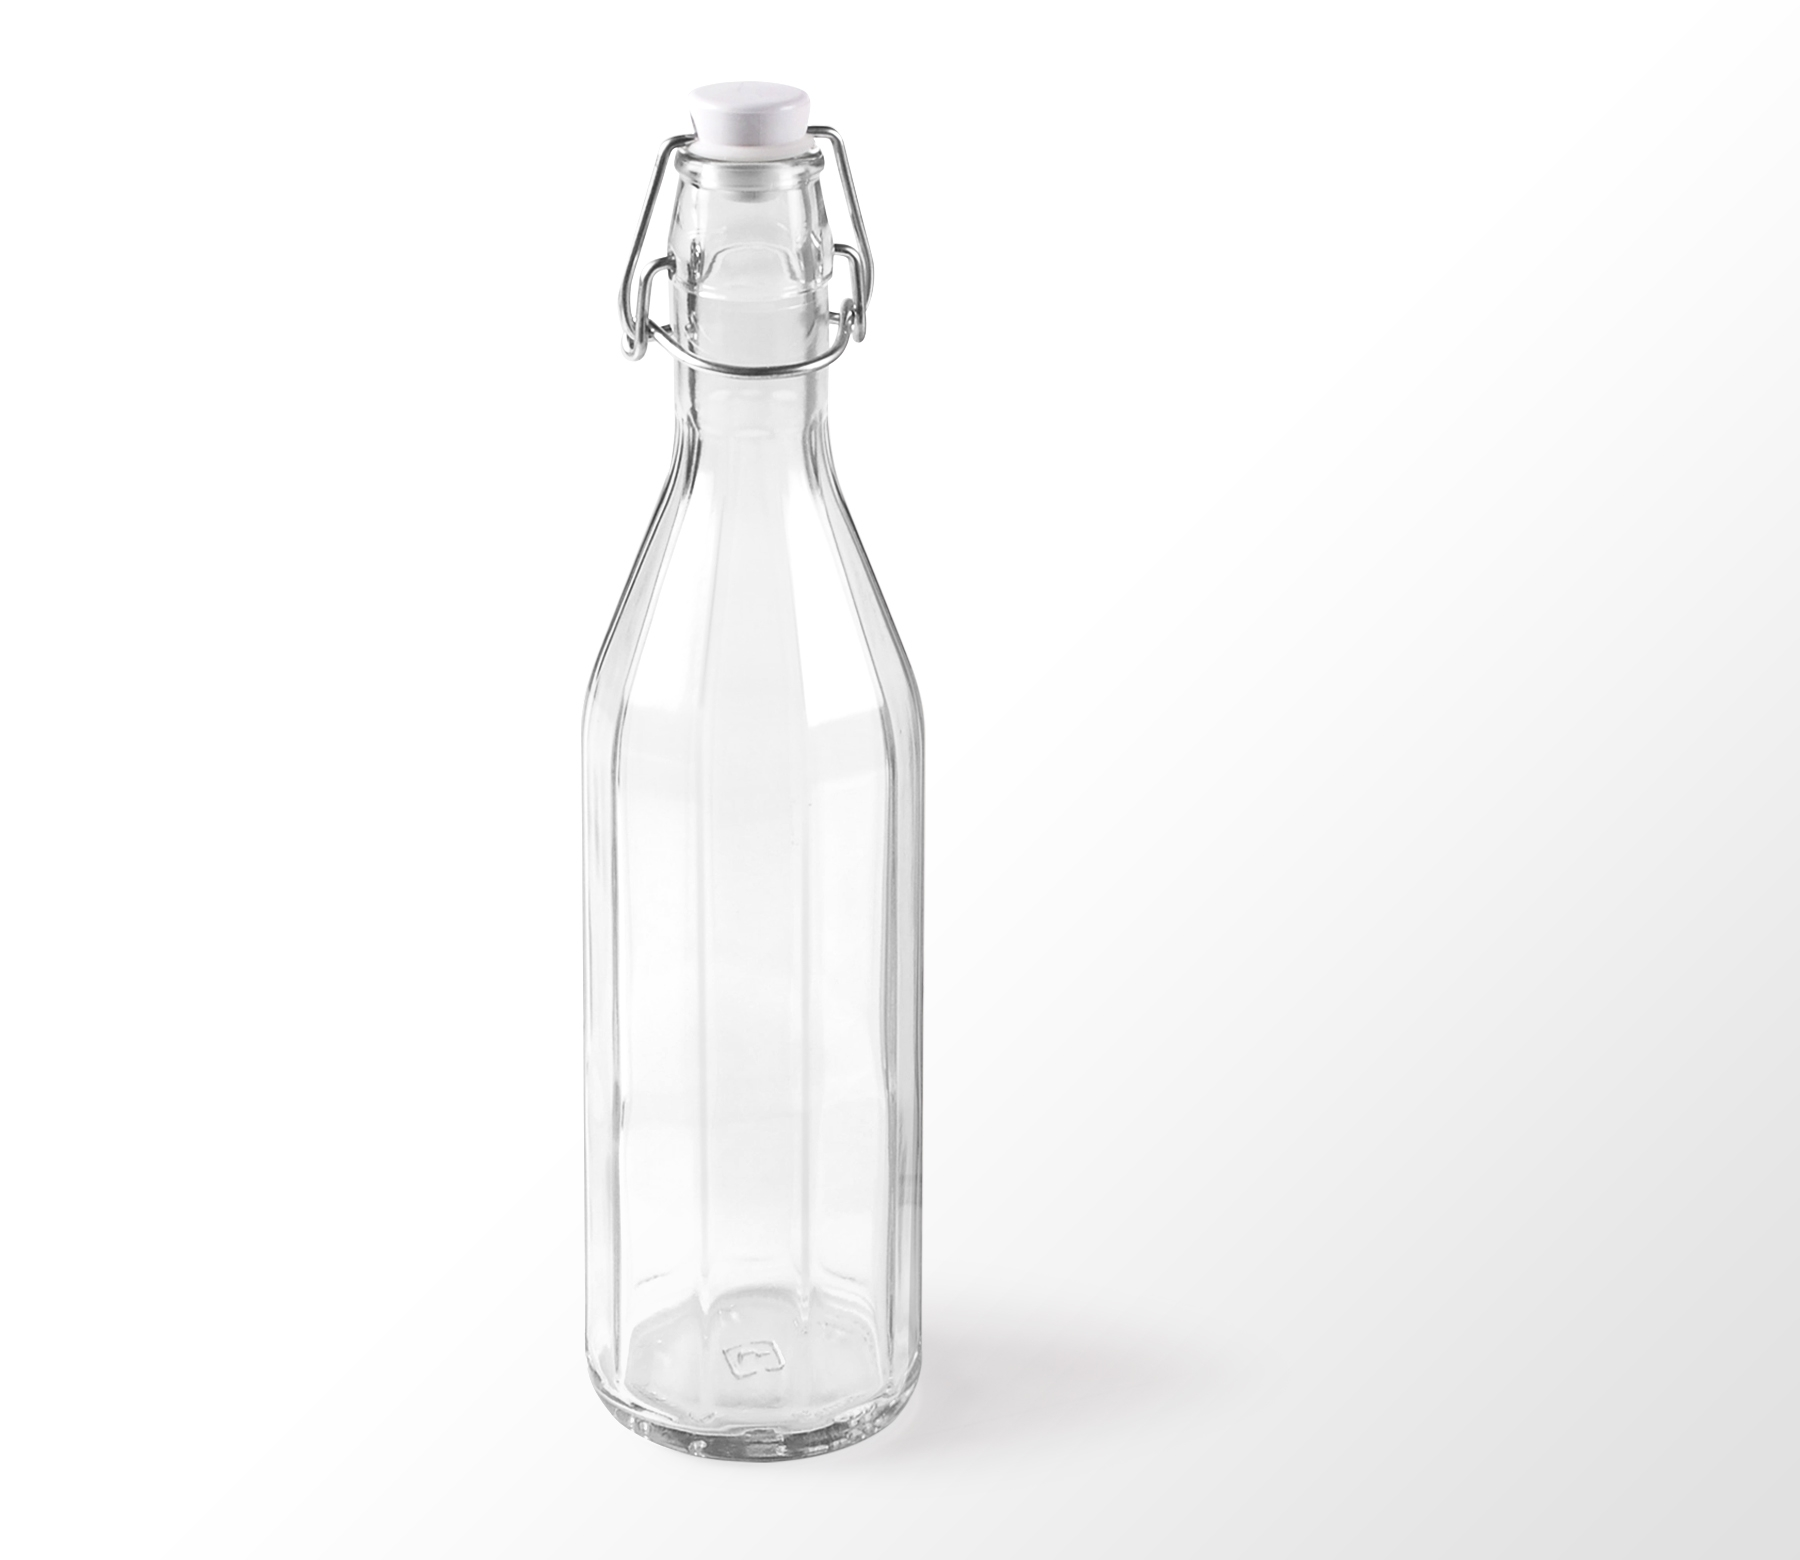 Customizable Glass Bottles with a Label and Cardboard Box